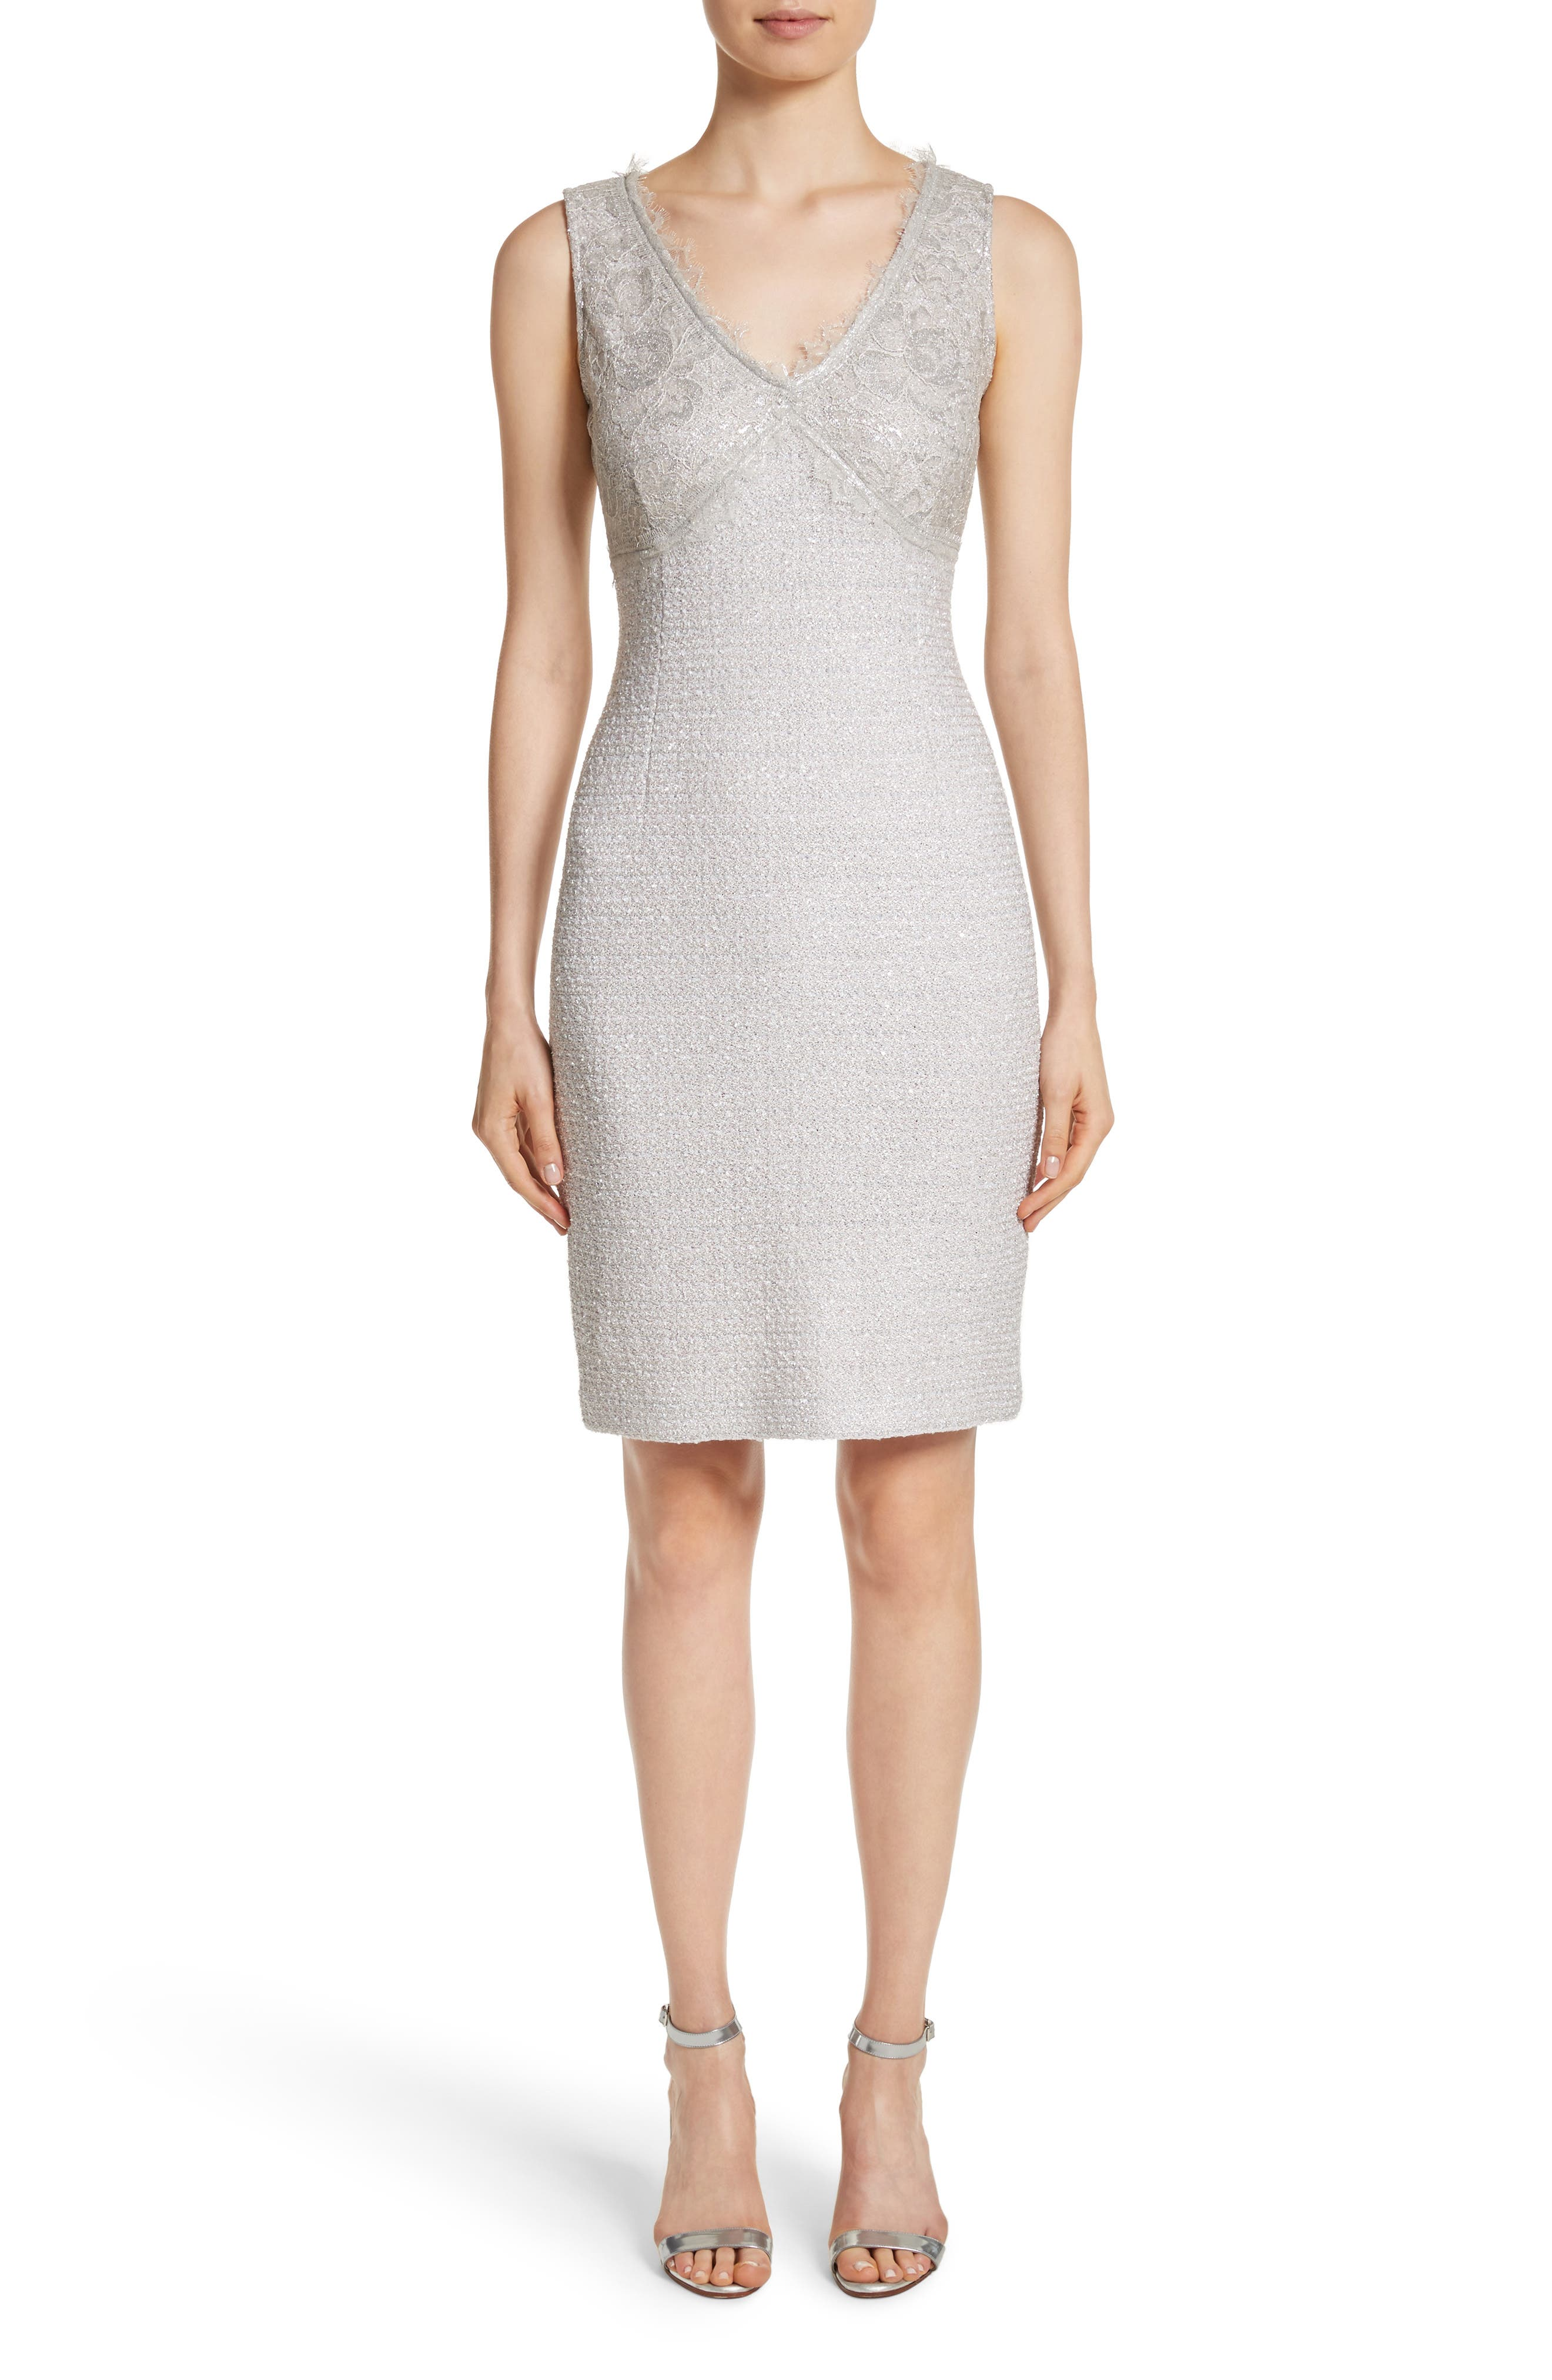 Main Image - St. John Collection Metallic Eyelash Knit Dress